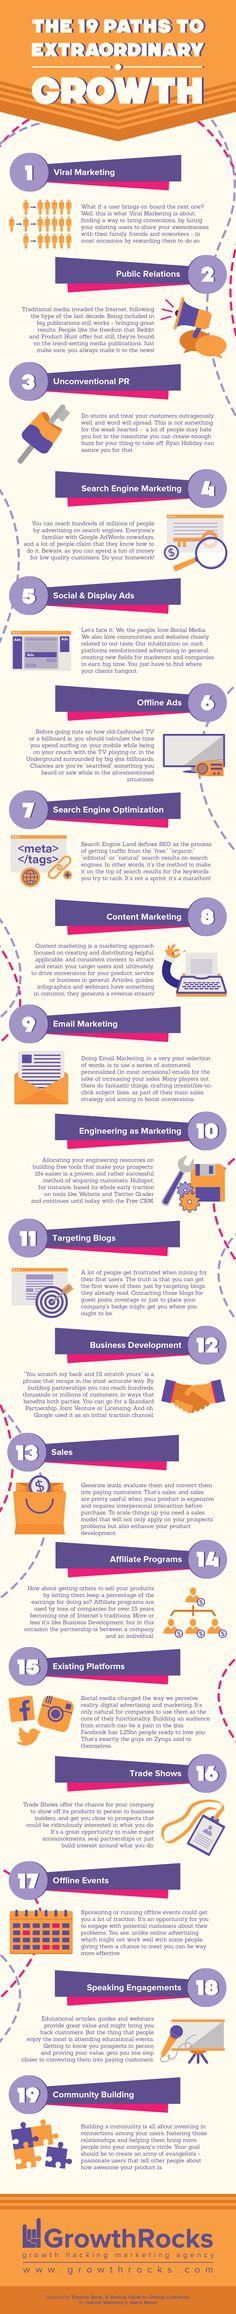 How To Increase Traffic: 19 Great Tips If you want to improve your business groving and you don't know what you should do, we offer you 19 simple tips. Read them and then decide for yourself what you need to improve.     Share This Infographic On